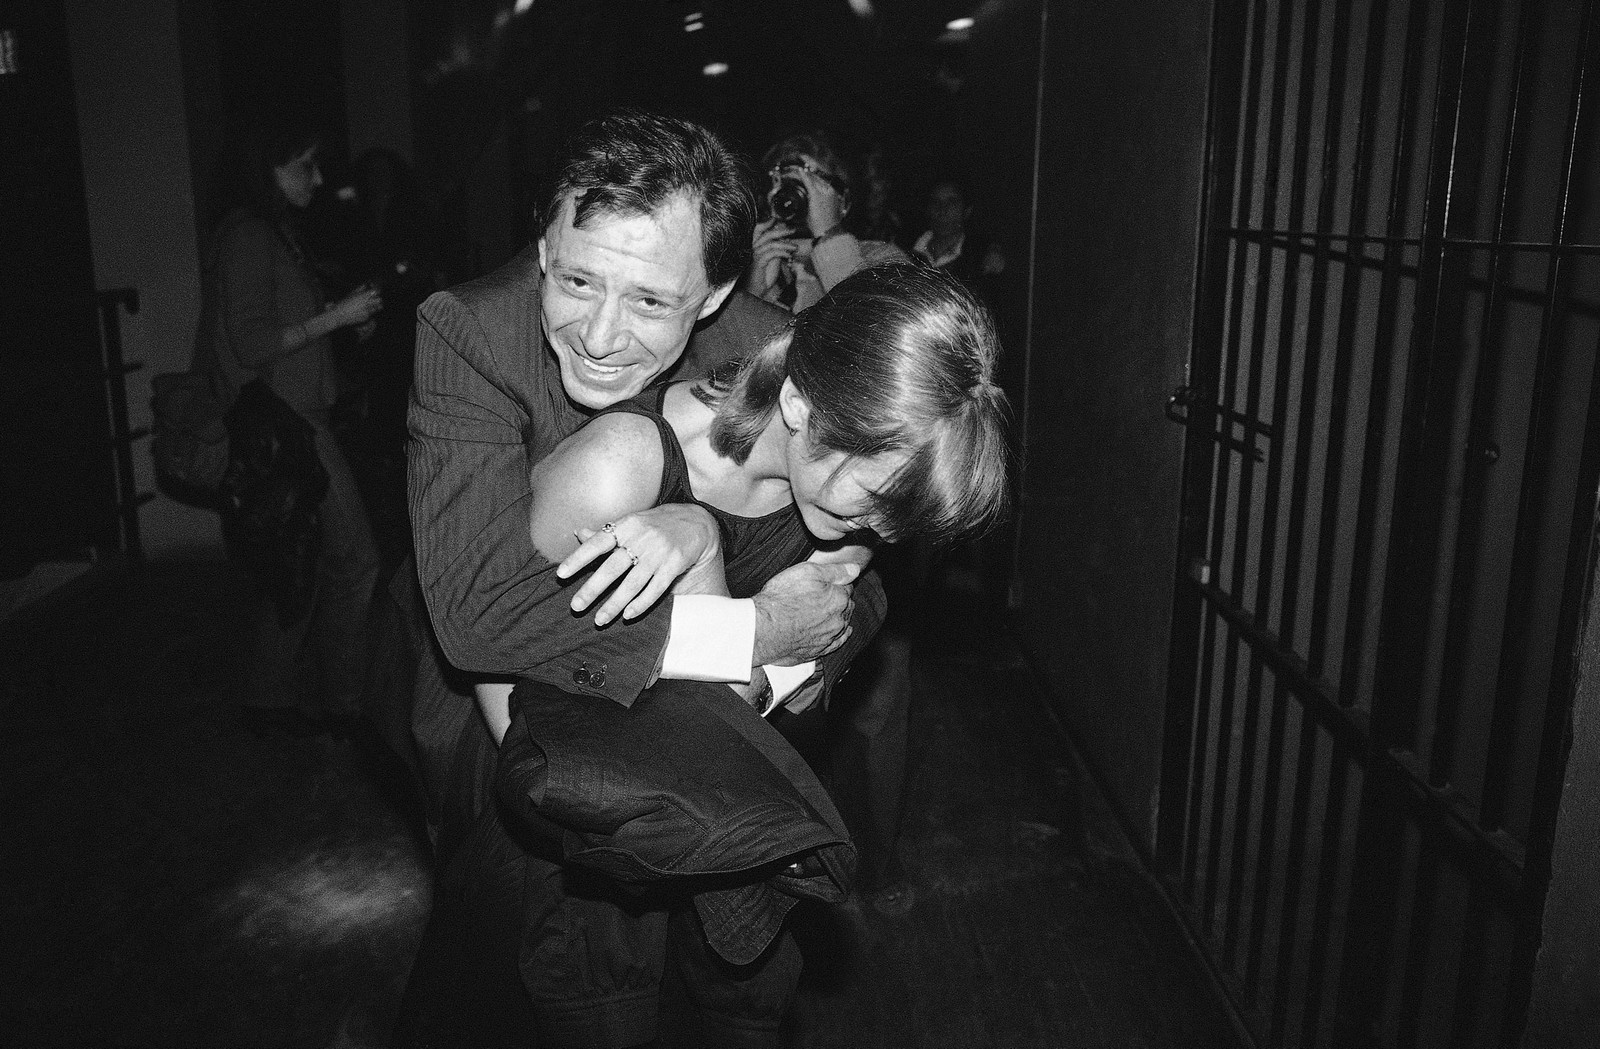 PÅ DISKO: Eddie Fisher og Carrie Fisher i det de er på vei inn på The Underground Disco i New York, 24. april 1981. (AP Photo/Drew)